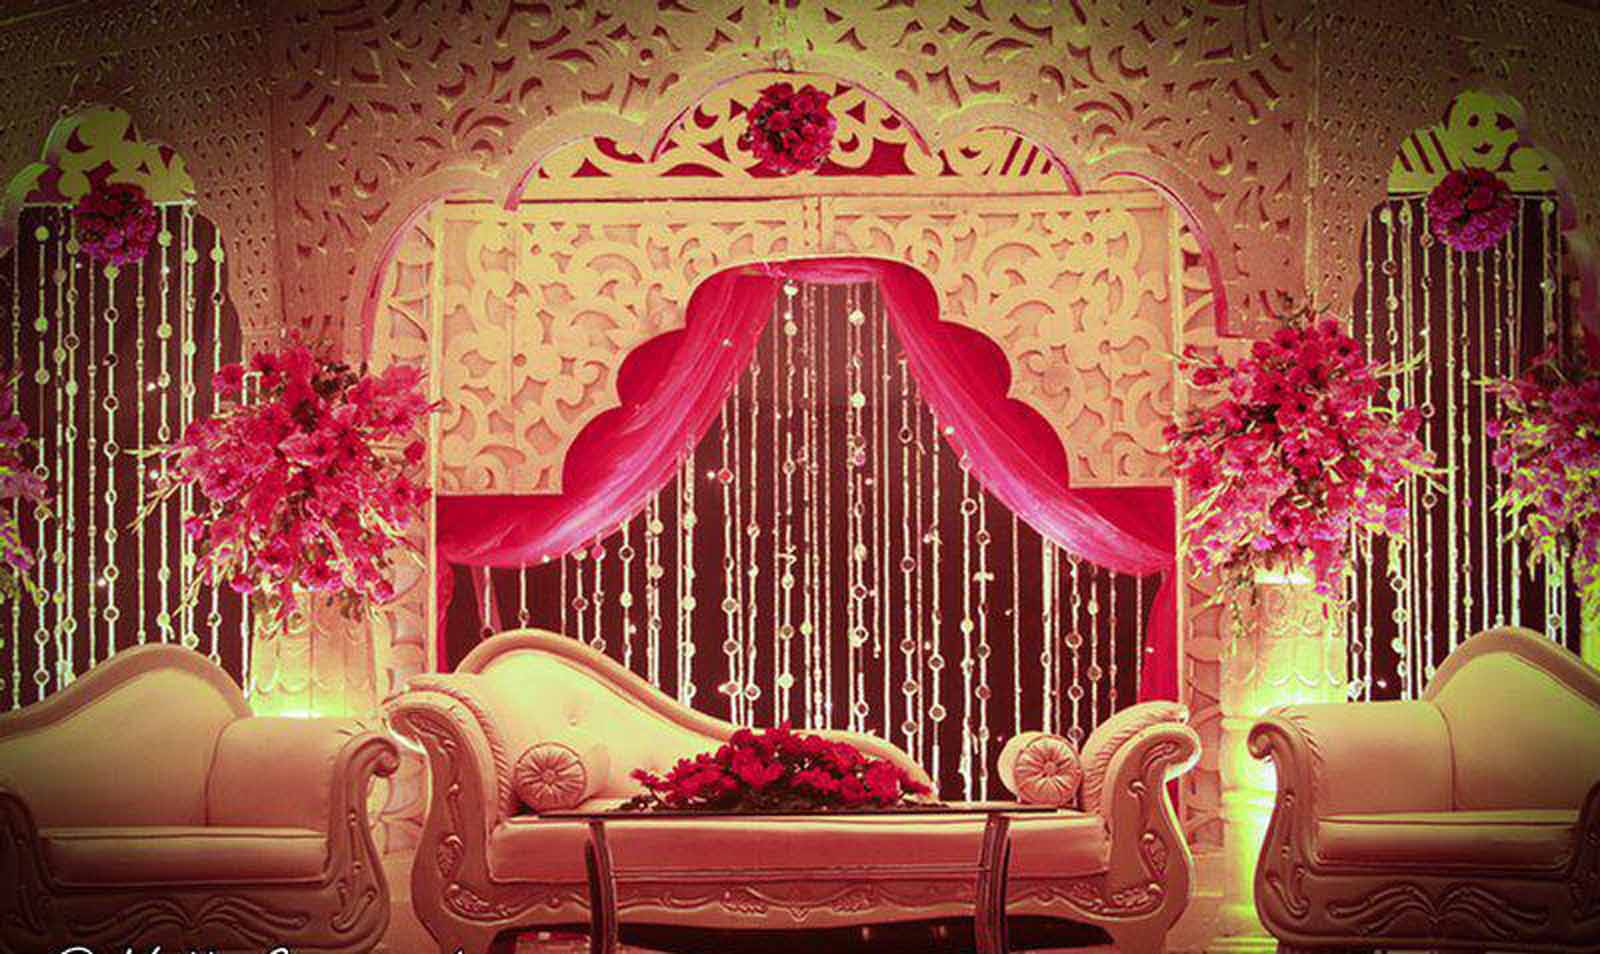 Wedding decorations images living room interior designs for Wedding decorations home